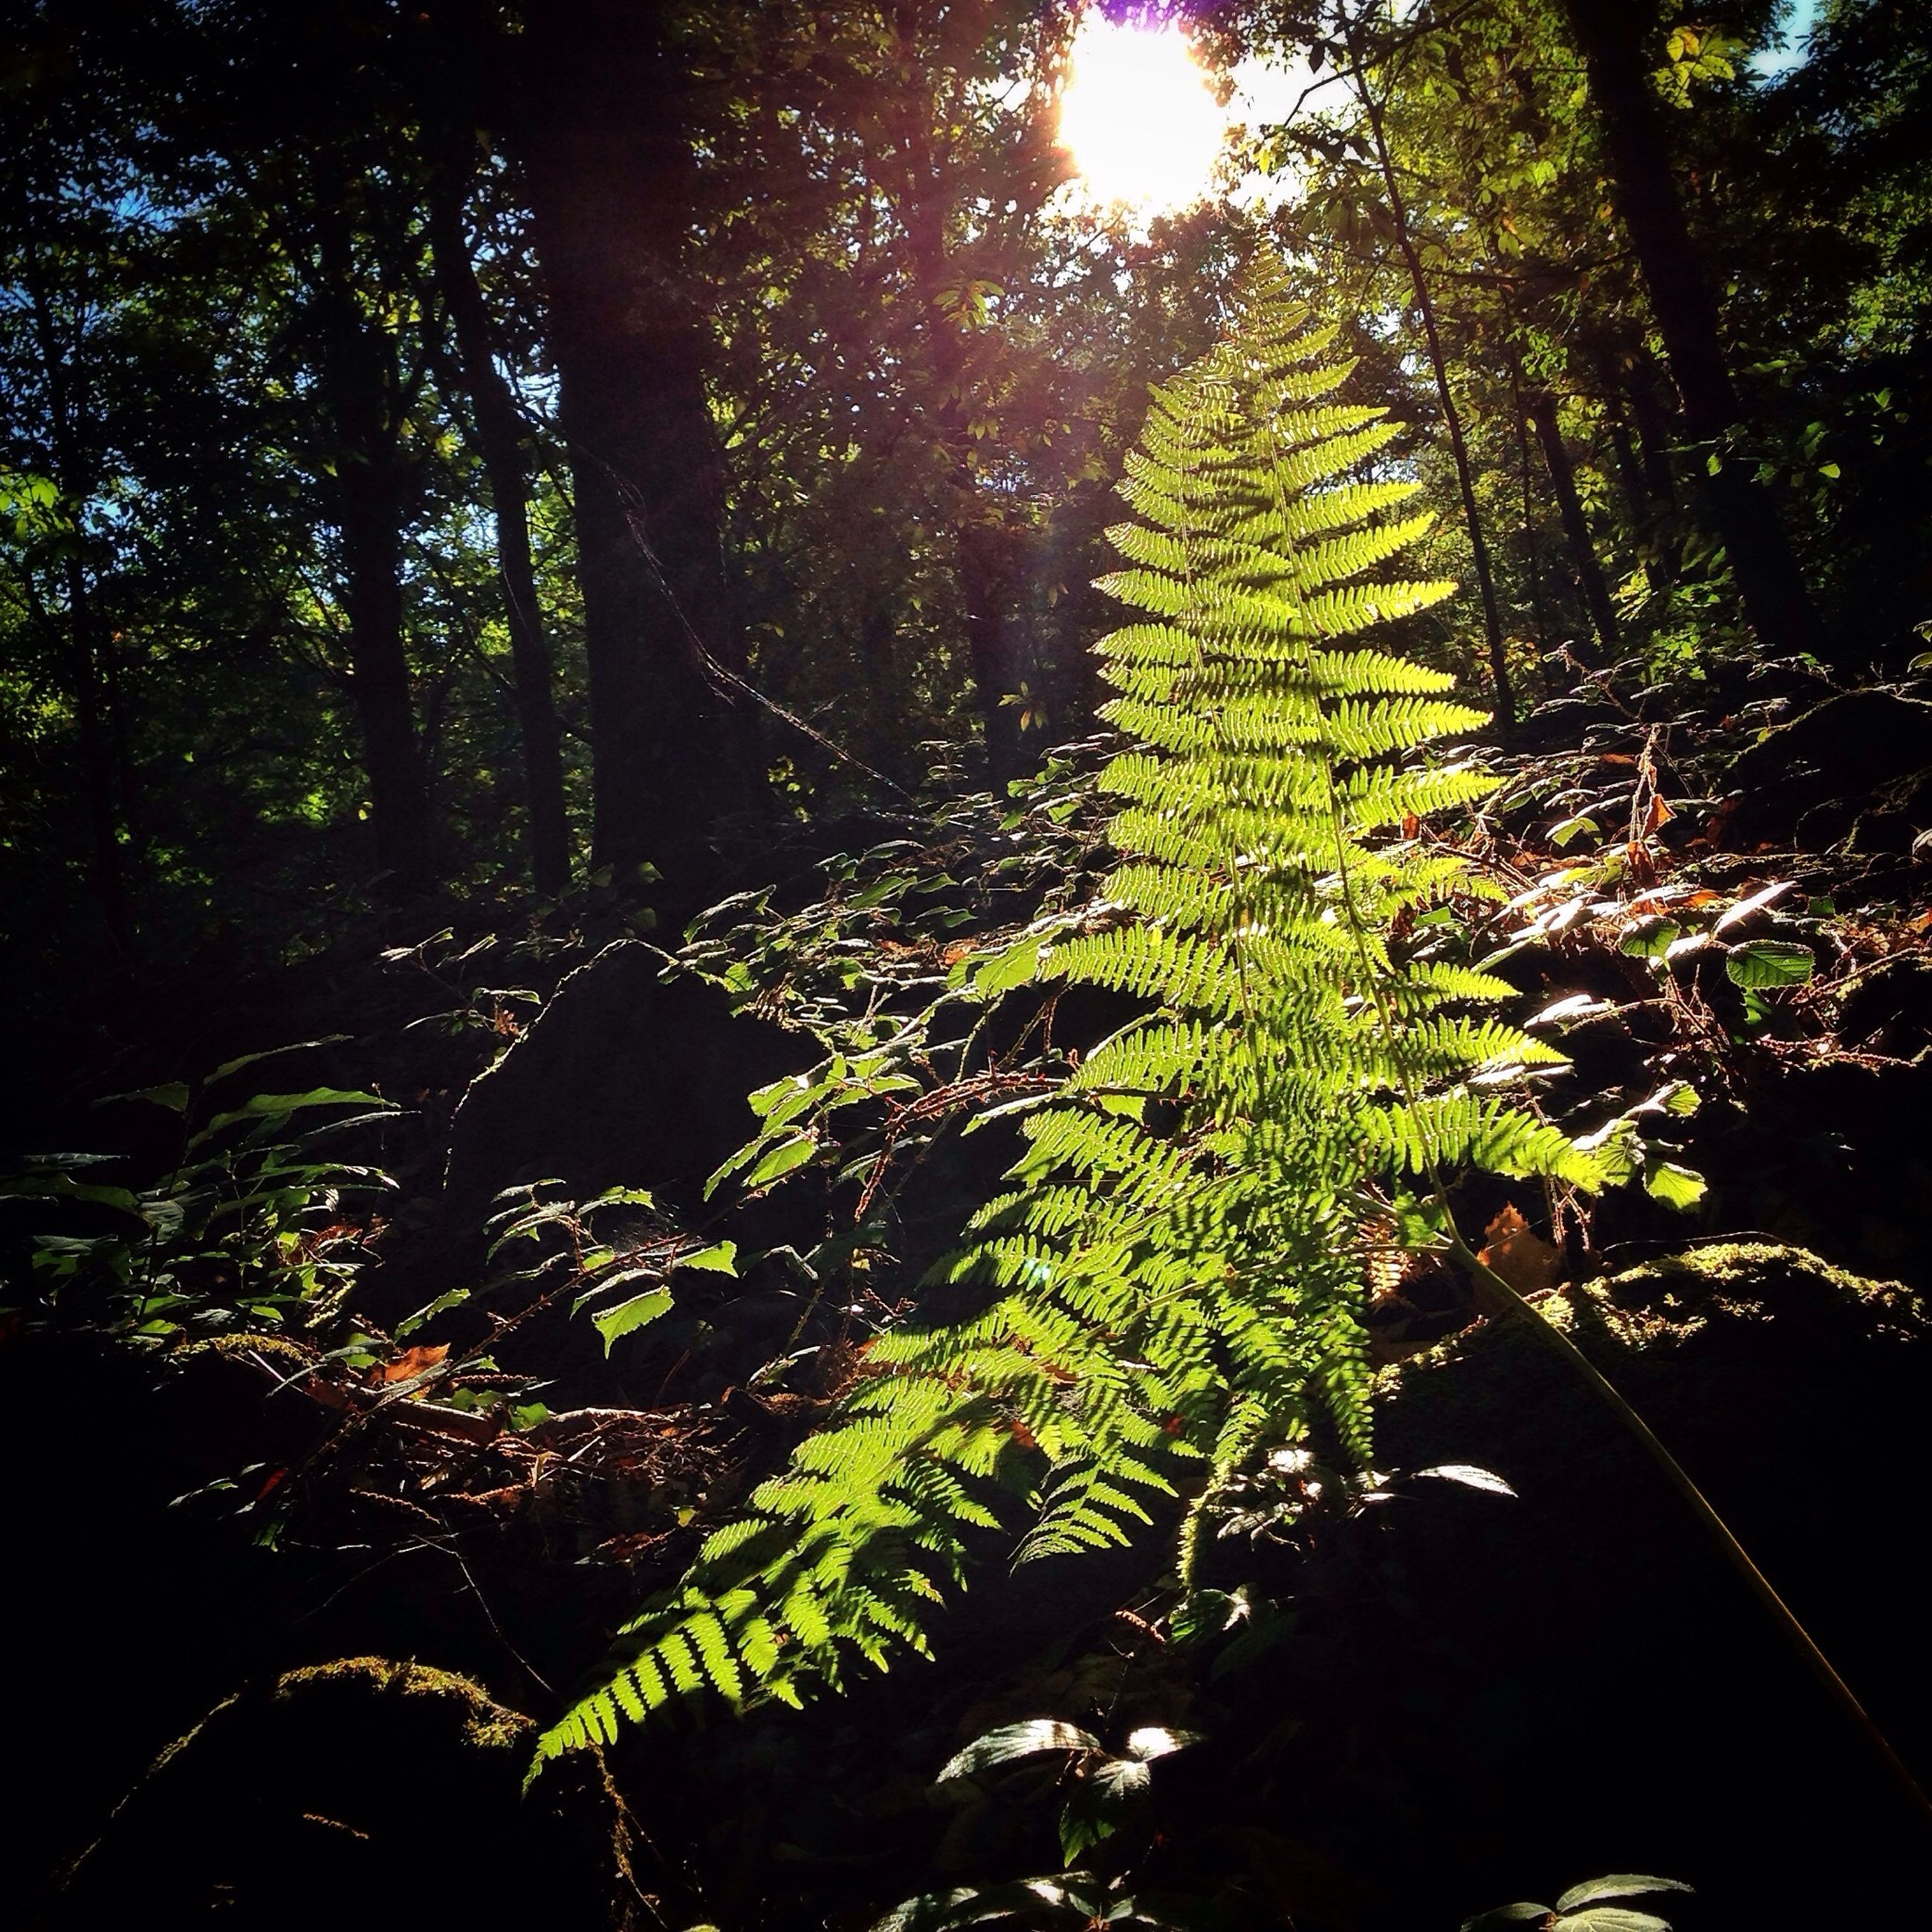 tree, growth, forest, green color, sunlight, sun, tranquility, sunbeam, lens flare, nature, tranquil scene, beauty in nature, scenics, lush foliage, woodland, branch, tree trunk, landscape, sunny, non-urban scene